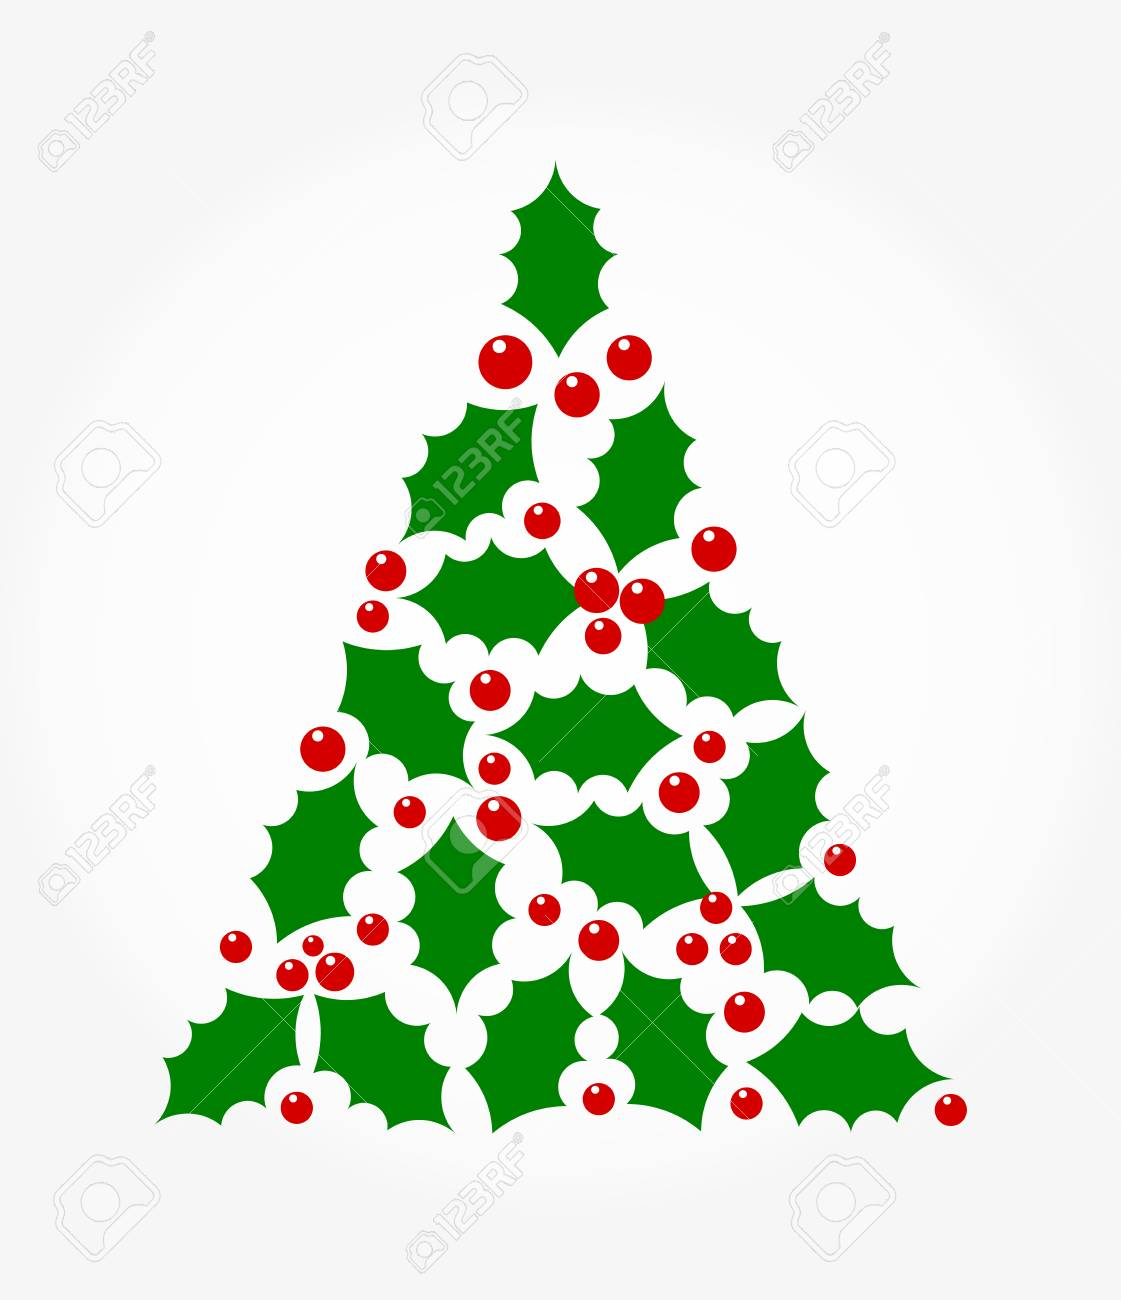 Christmas Tree Shape Holly Berry Illustration Royalty Free Cliparts